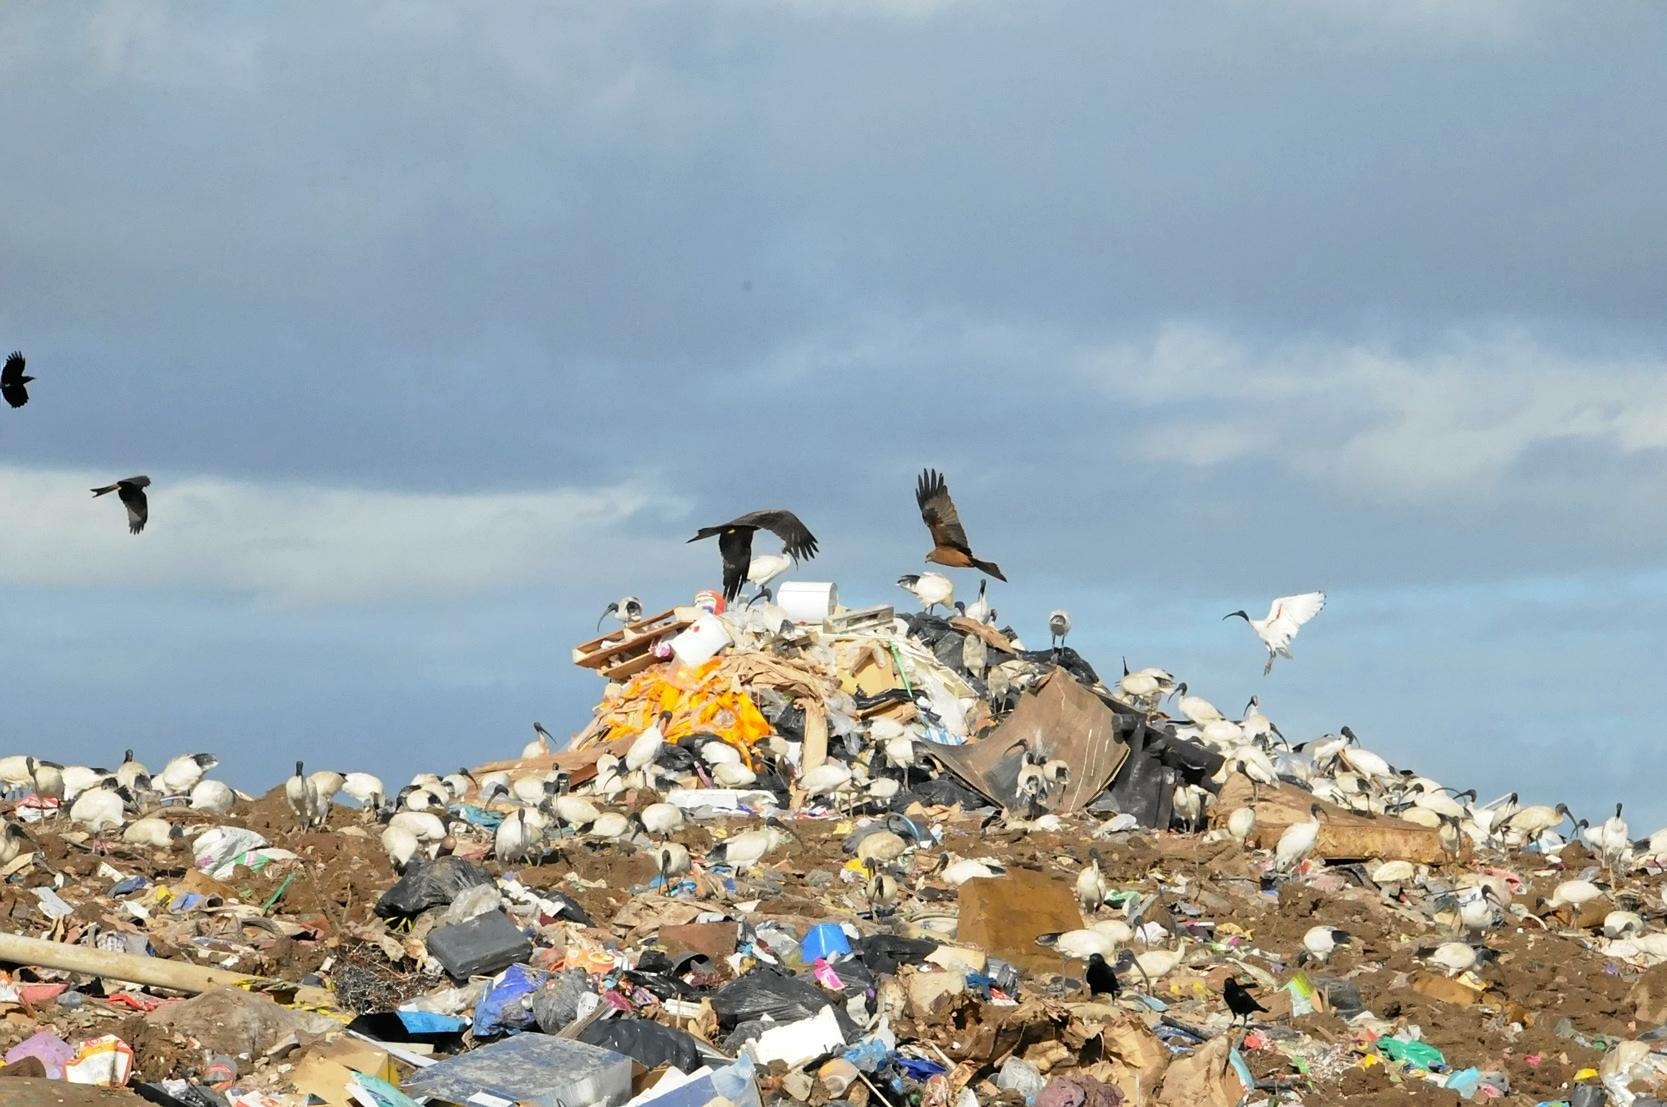 Kites at the Bonnick Road Dump site.Photo Tanya Easterby / The Gympie Times